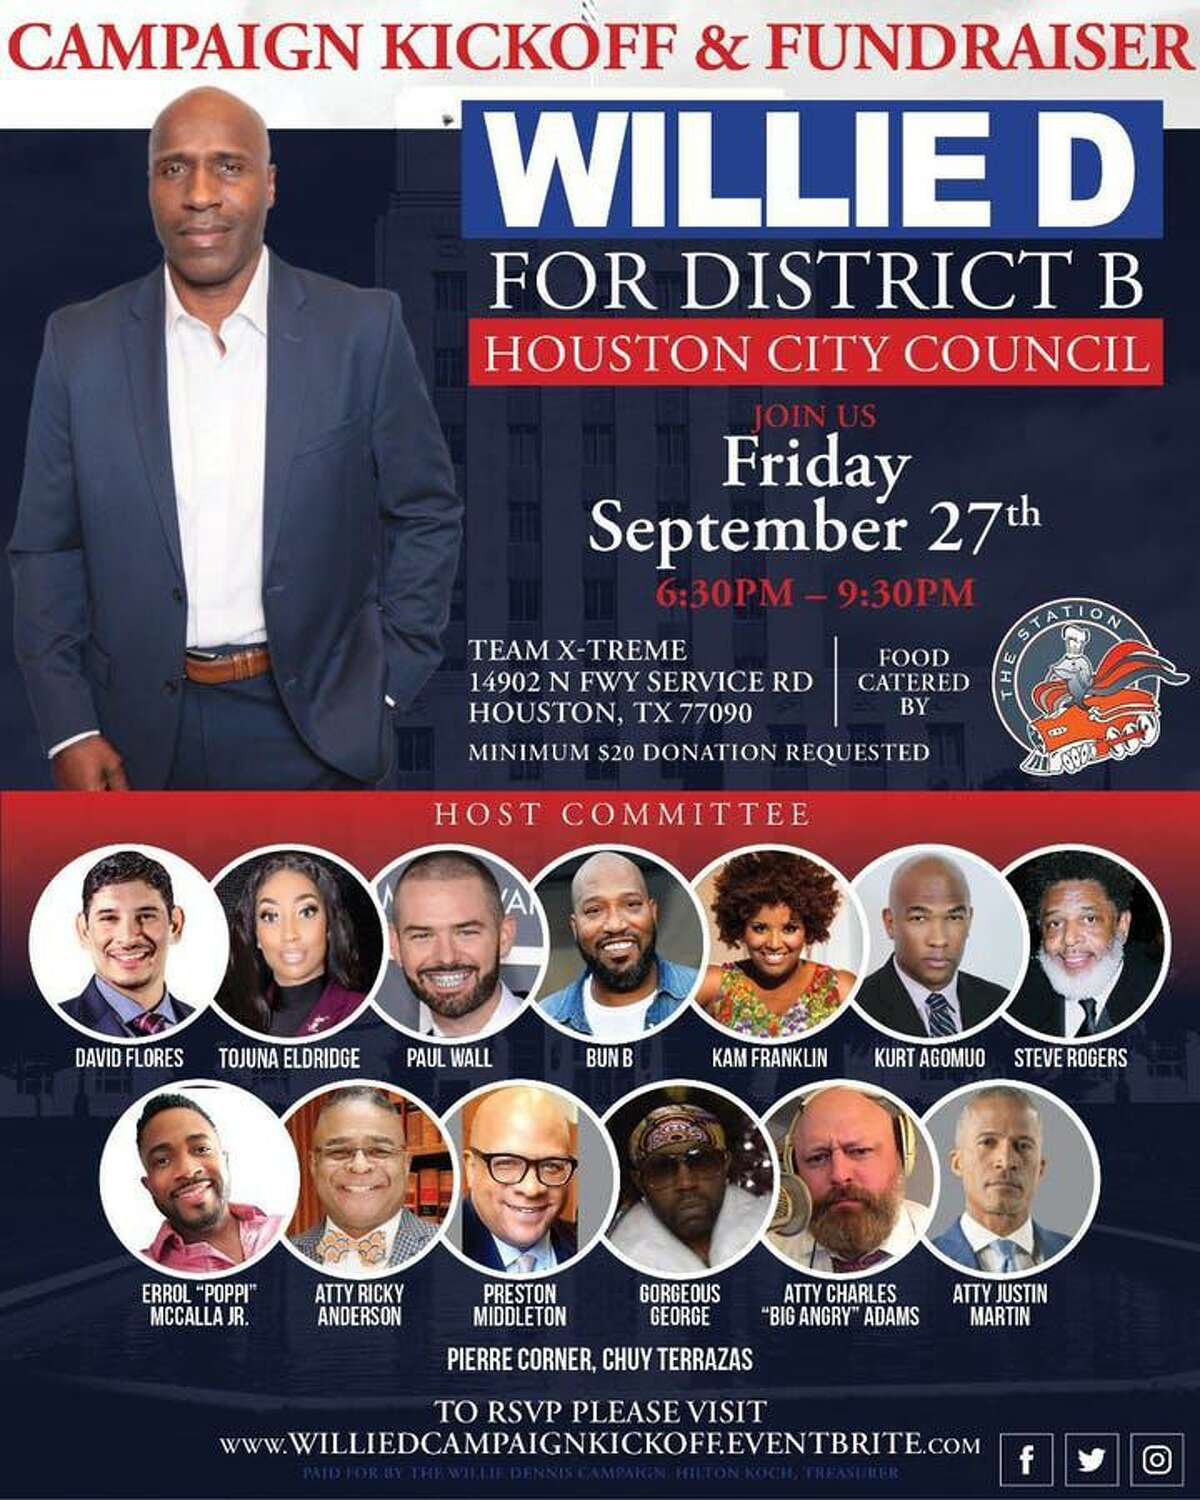 Willie D campaign kickoff and fundraiser invitation.